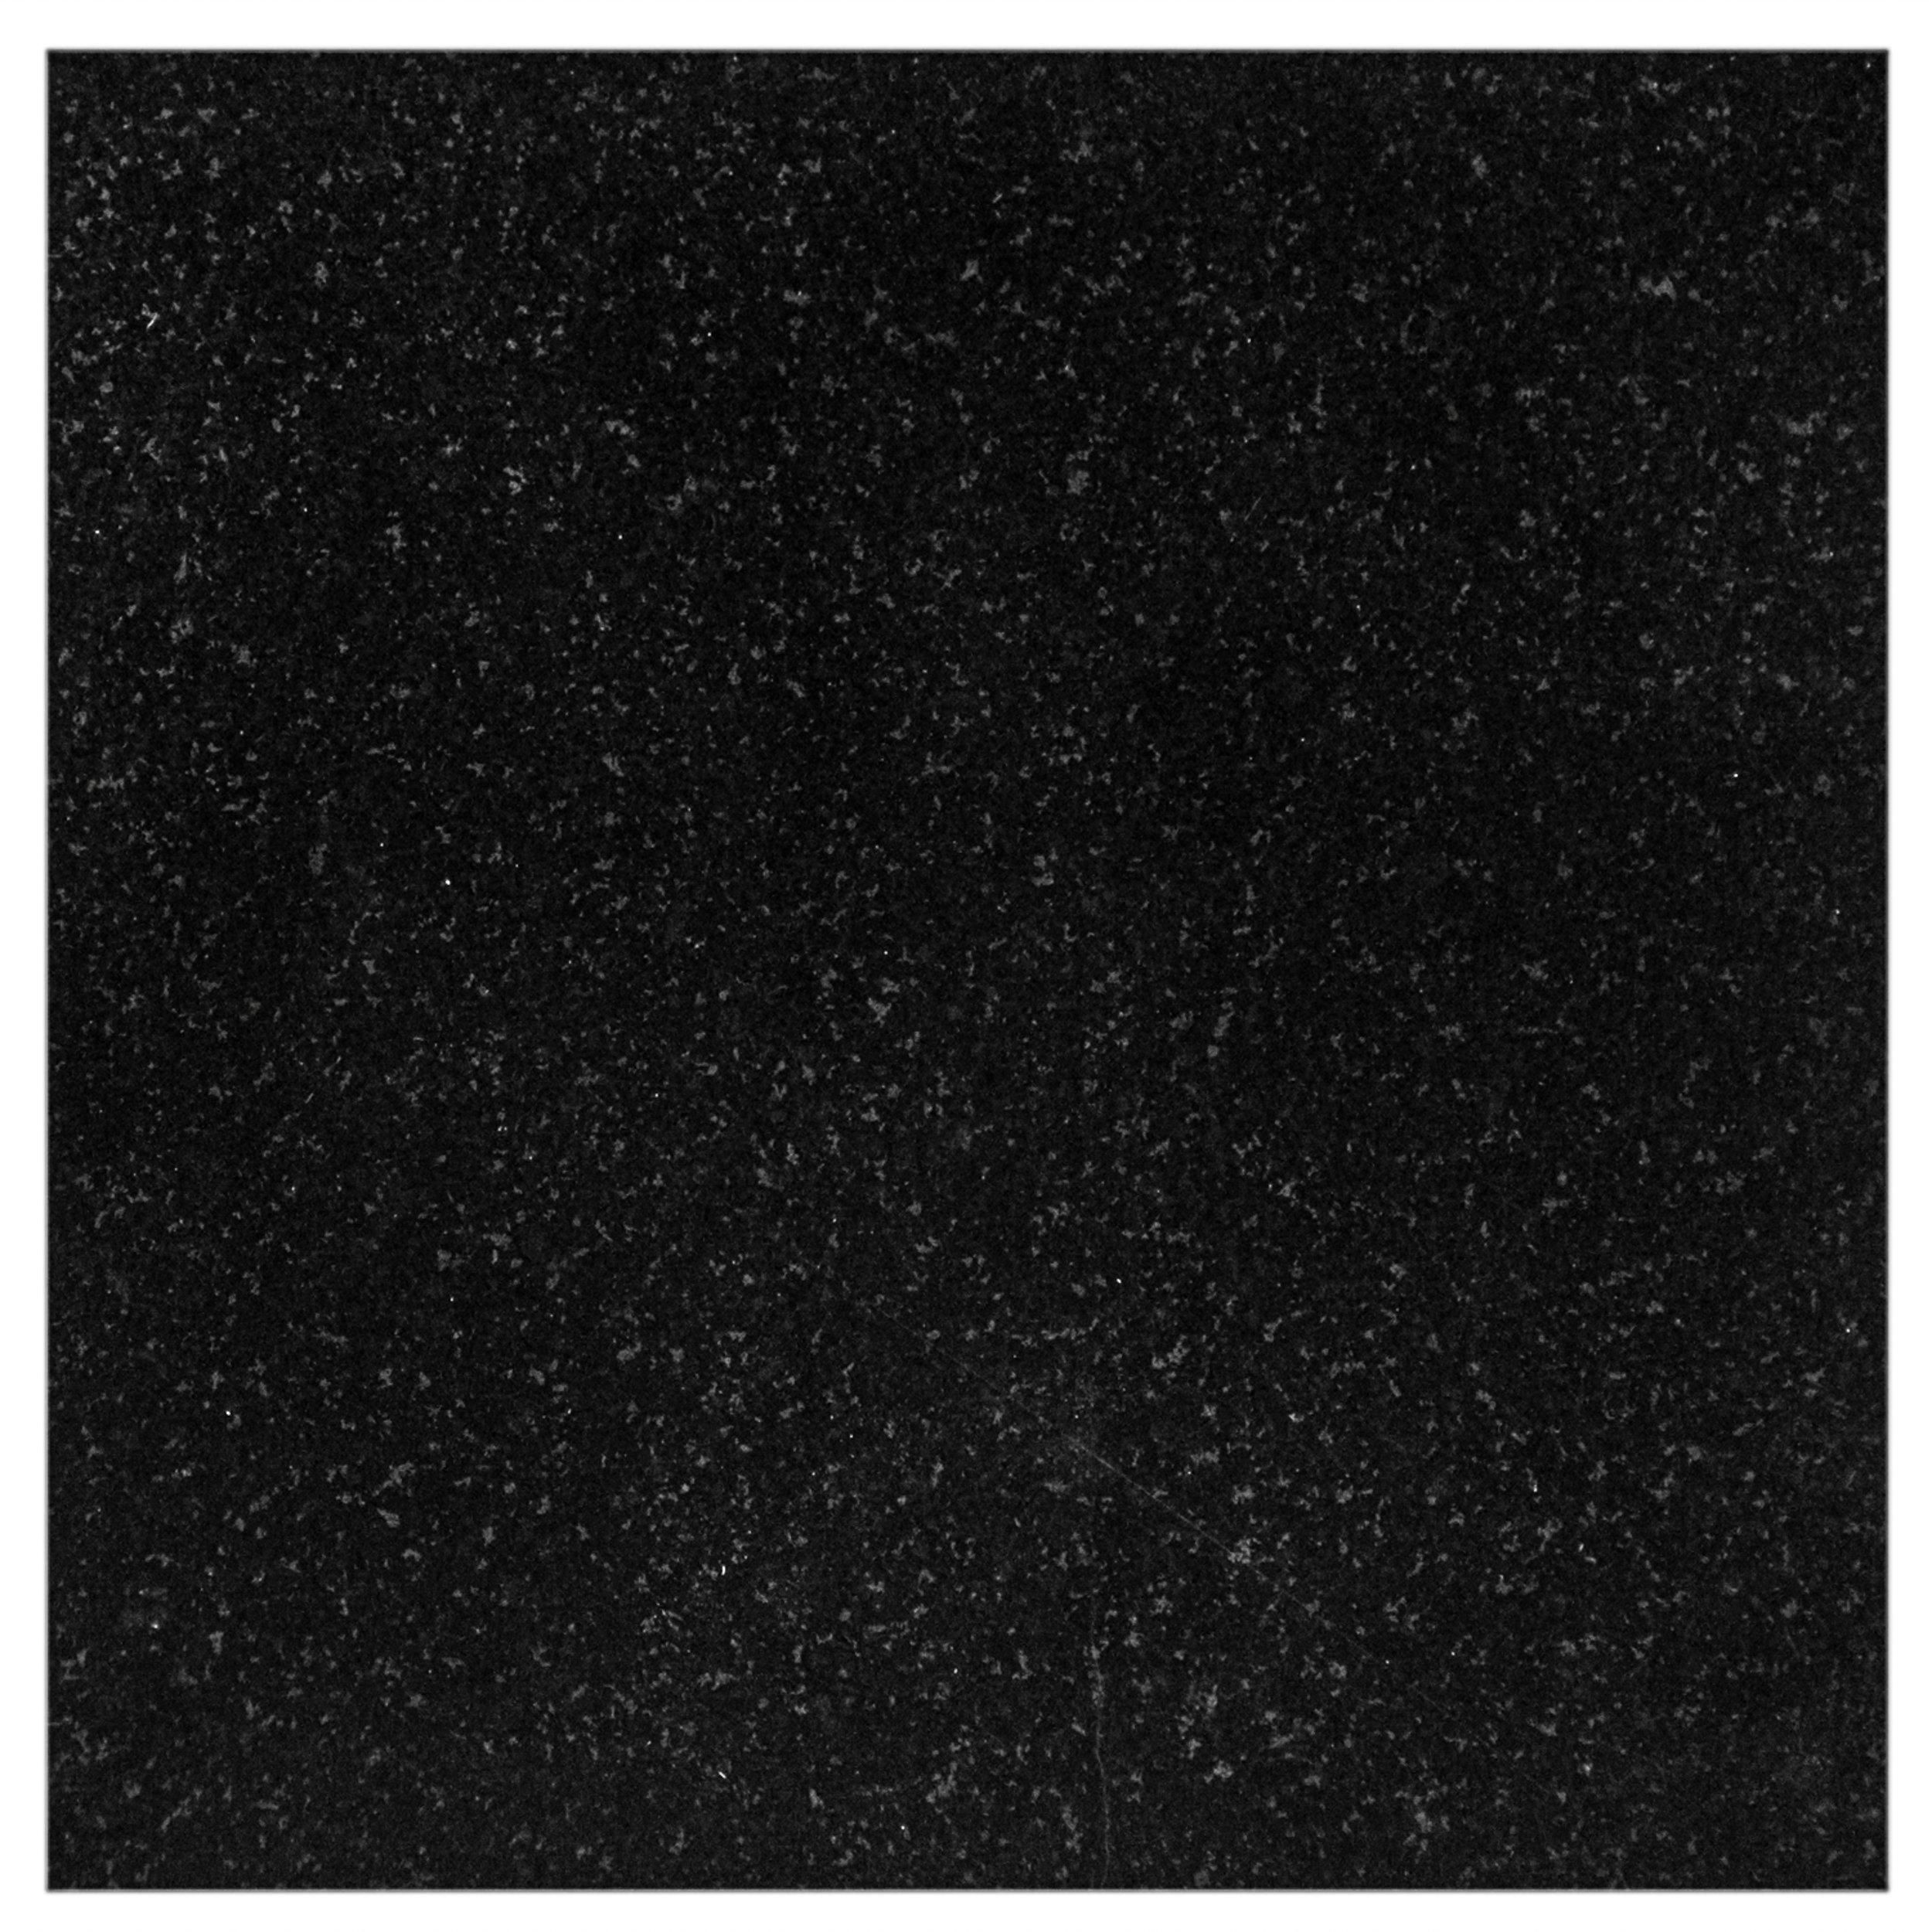 Absolute Black Granite Tile Floor Decor In 2020 Black Granite Tile Absolute Black Granite Black Granite